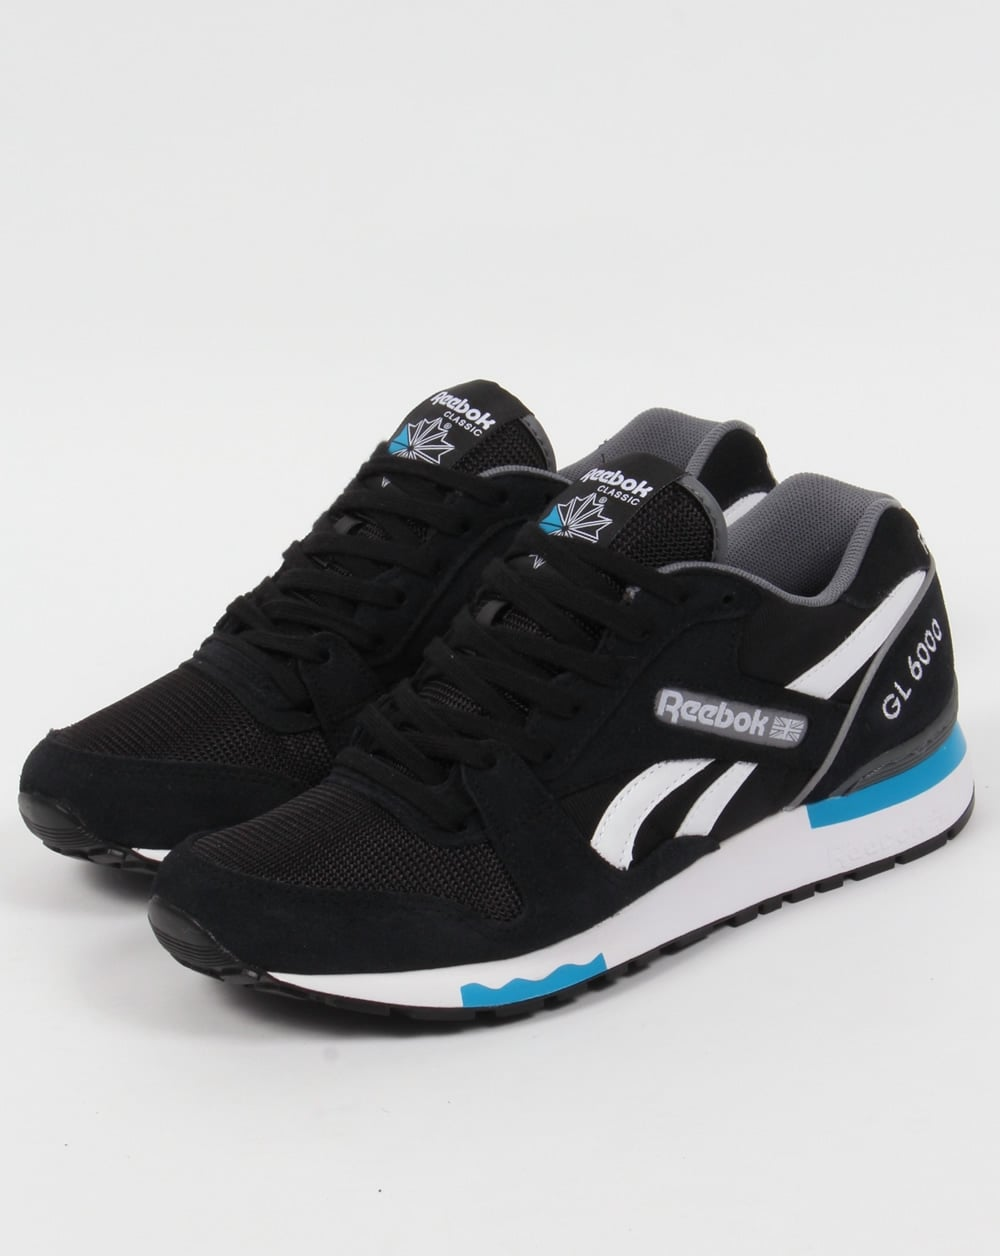 a8a01ed8cd14 black reebok trainers cheap   OFF32% The Largest Catalog Discounts